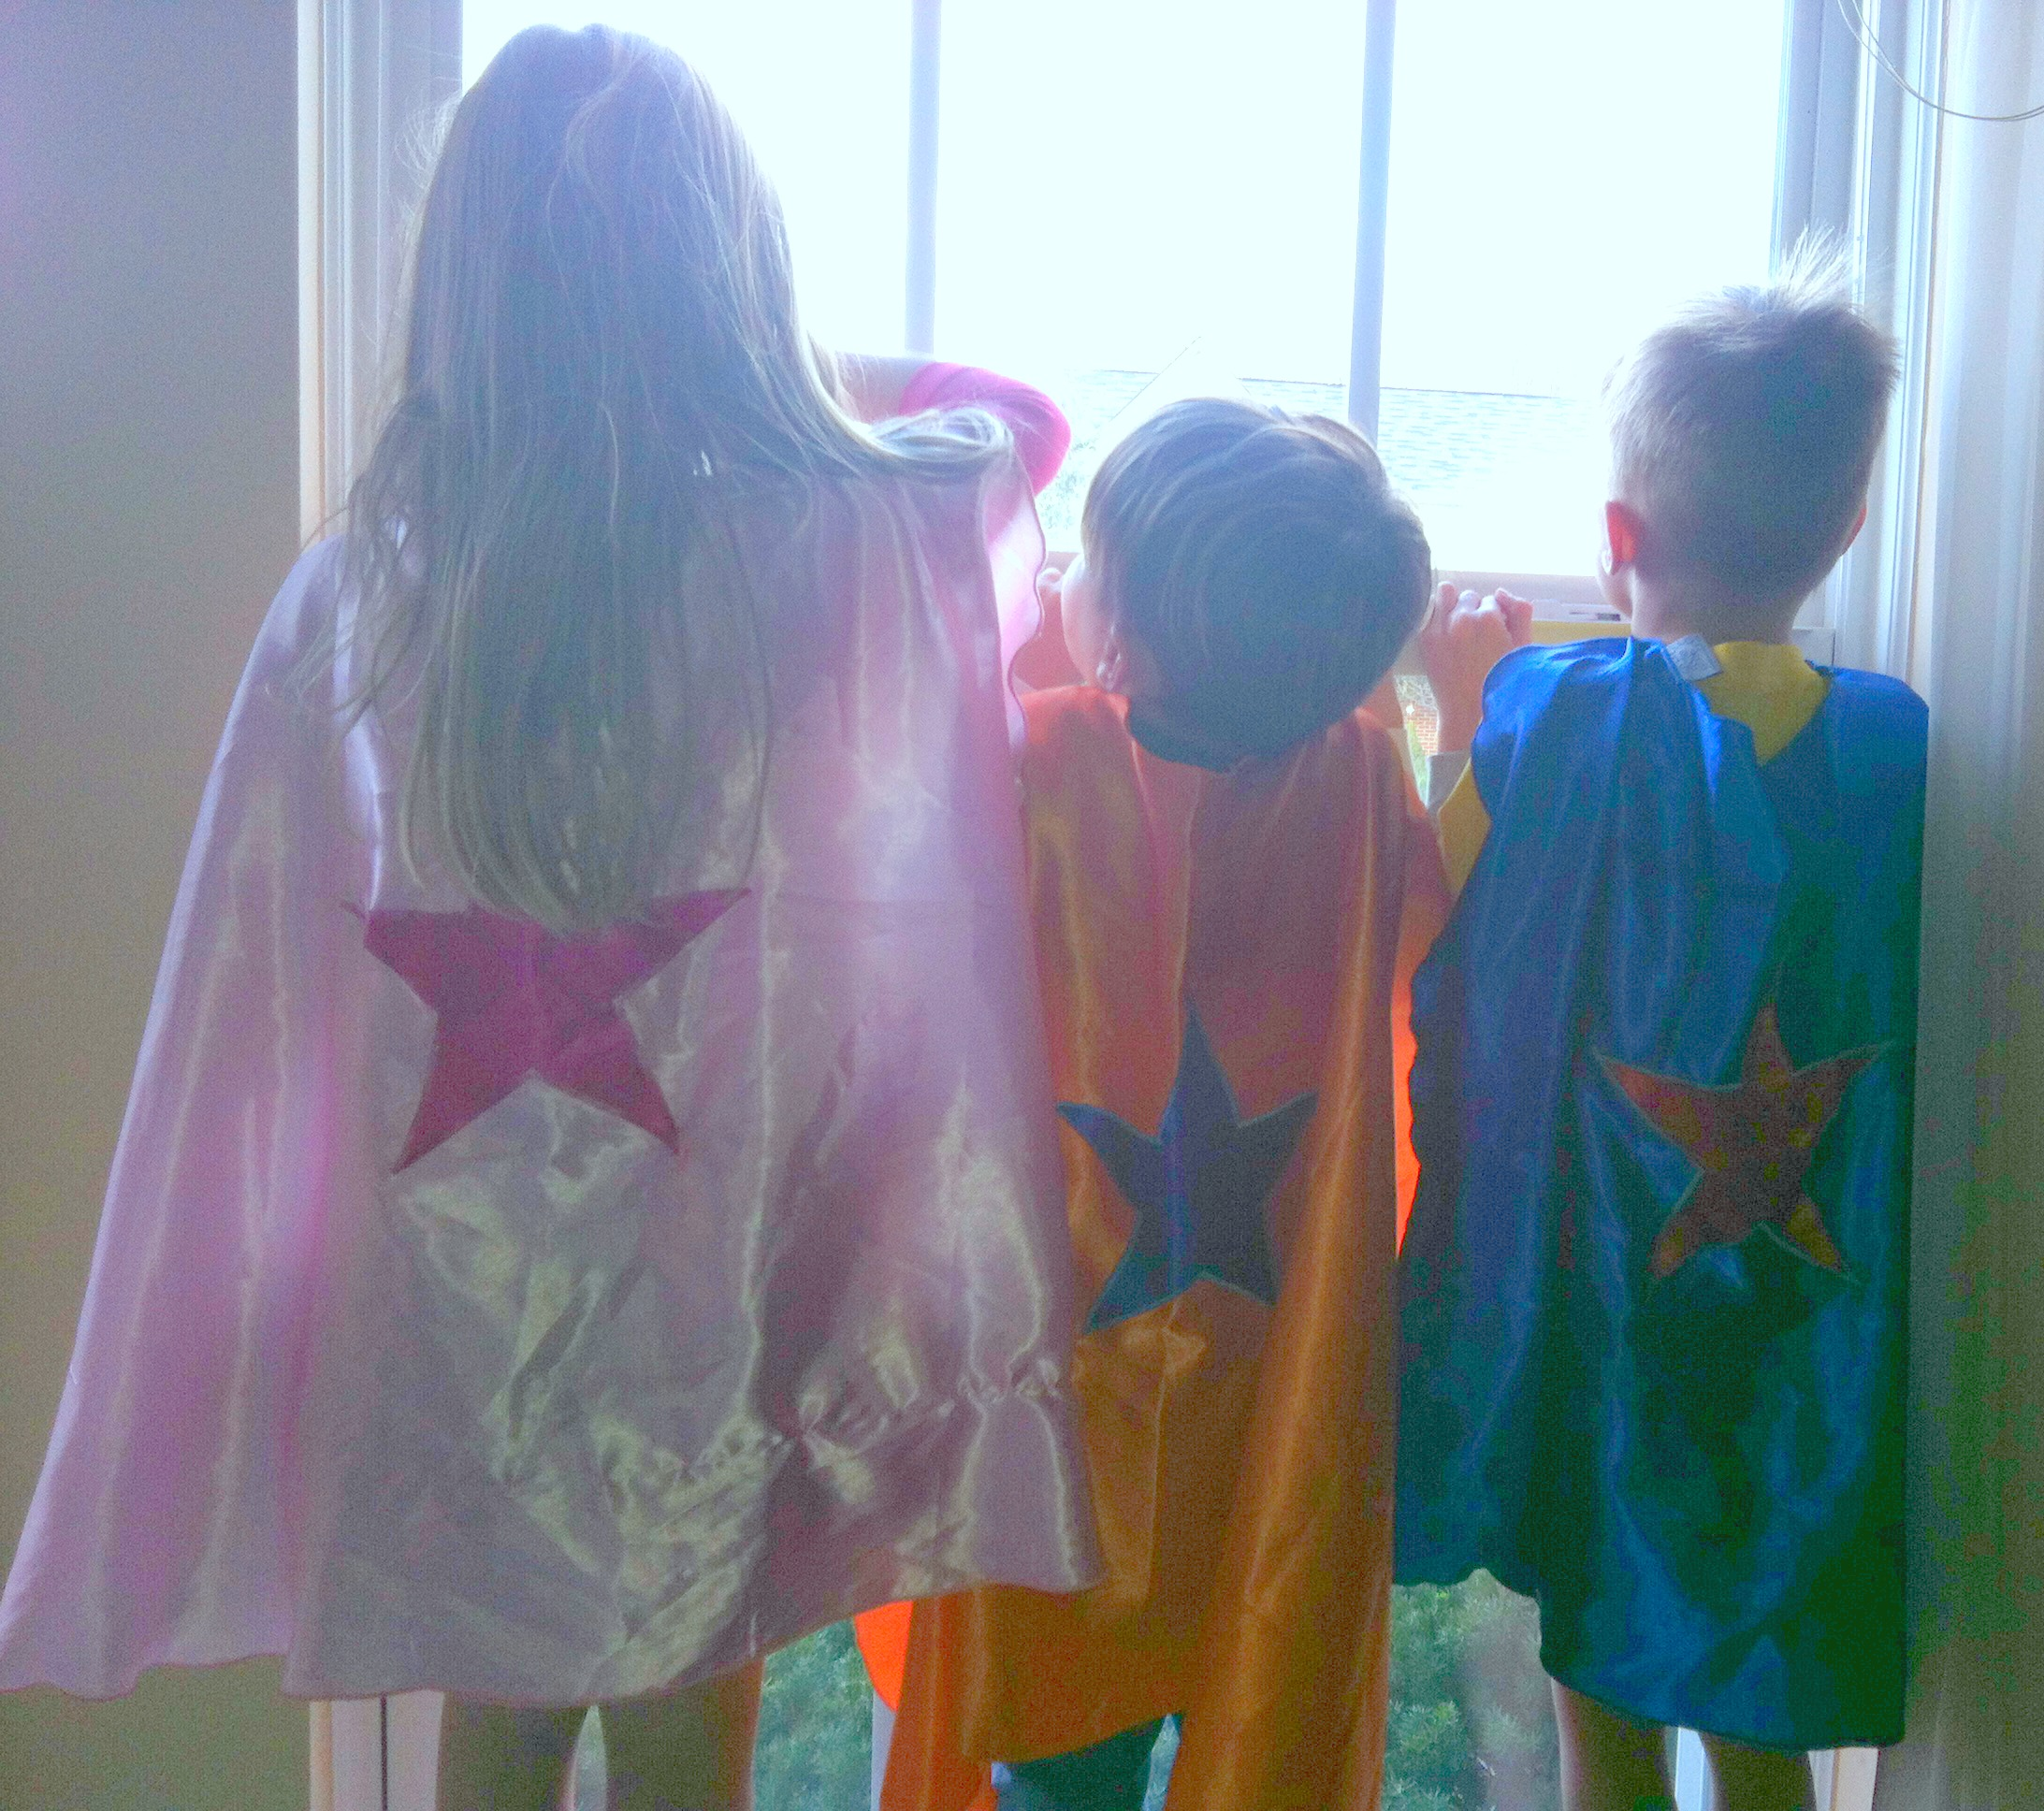 kids in capes